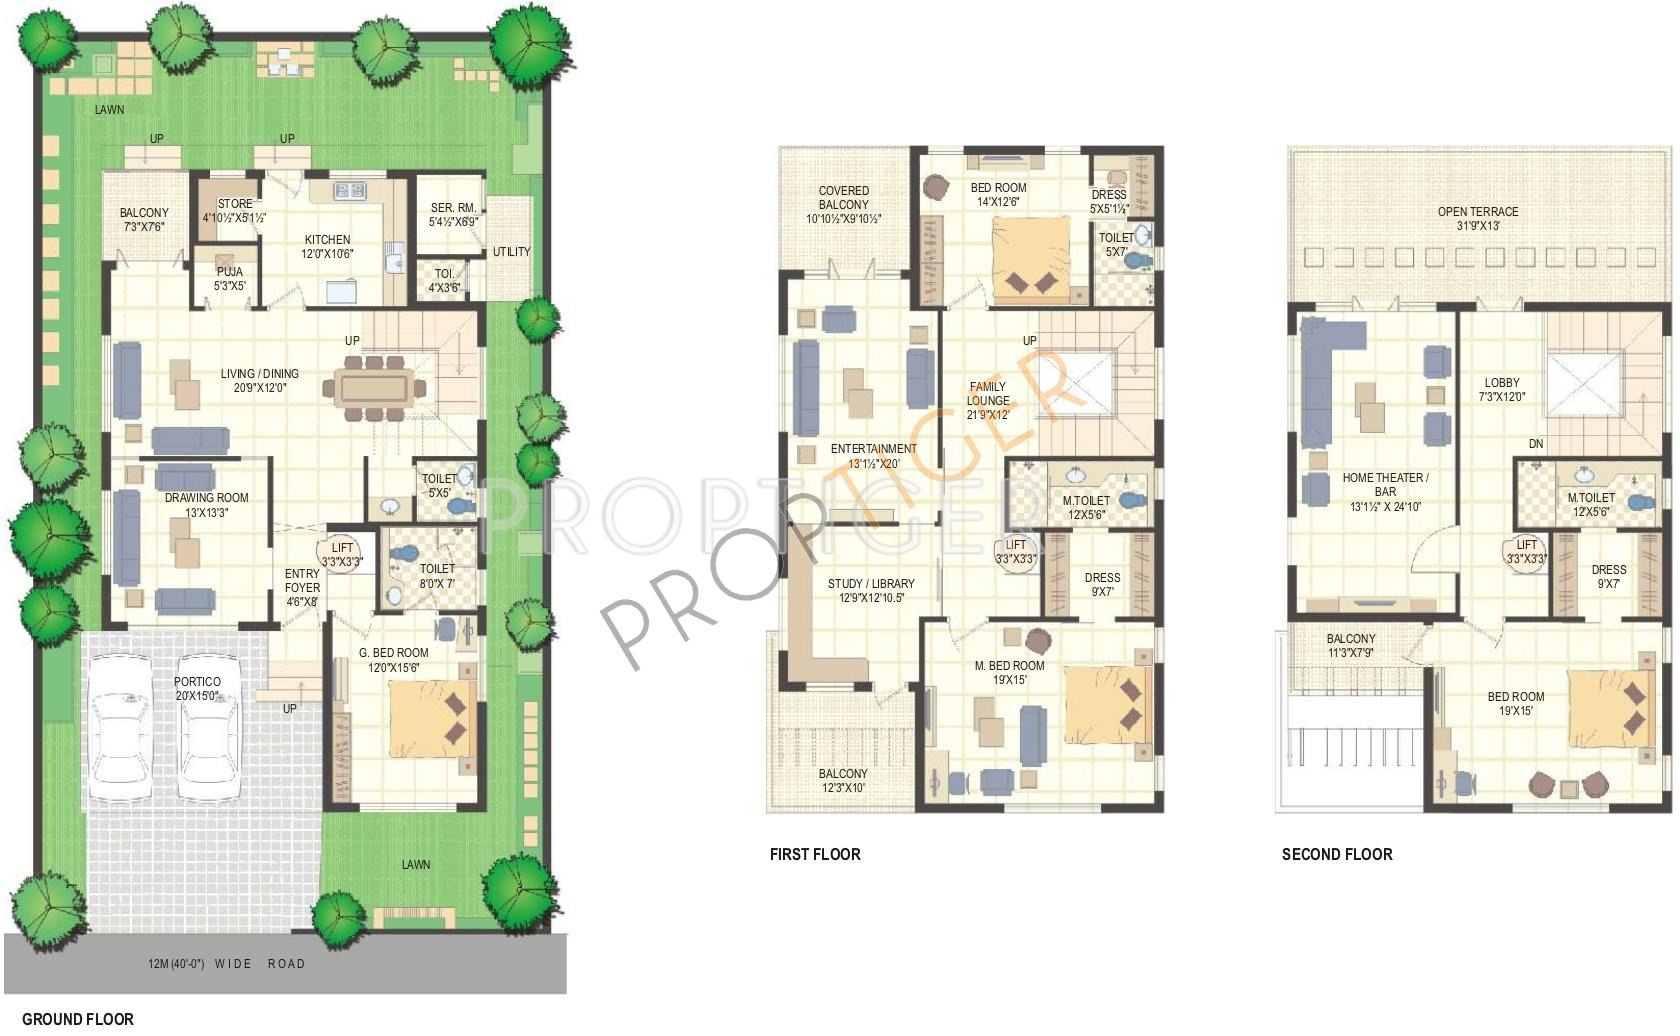 4498 Sq Ft 4 Bhk Floor Plan 4bhk 6t Sr 4498 Sq Ft Image